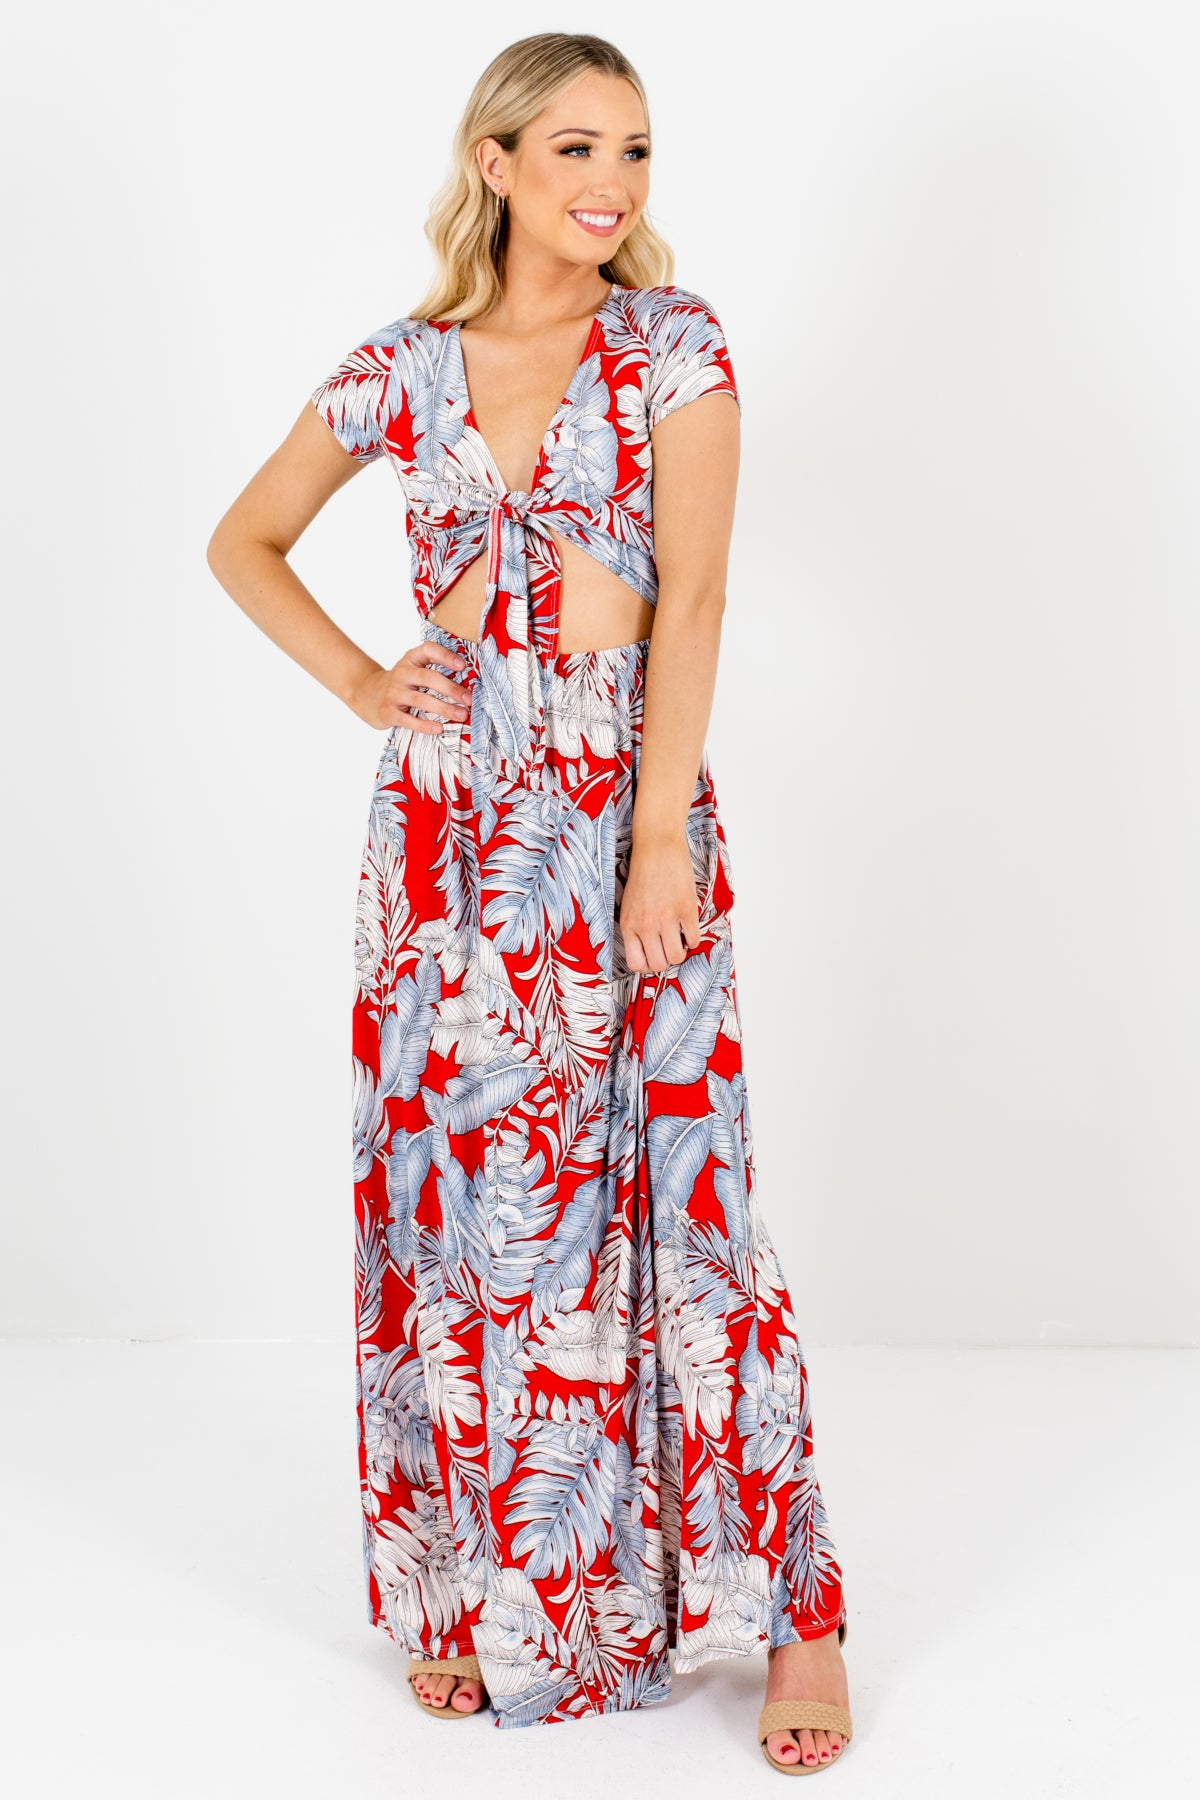 Red White and Light Blue Tropical Patterned Boutique Maxi Dresses for Women